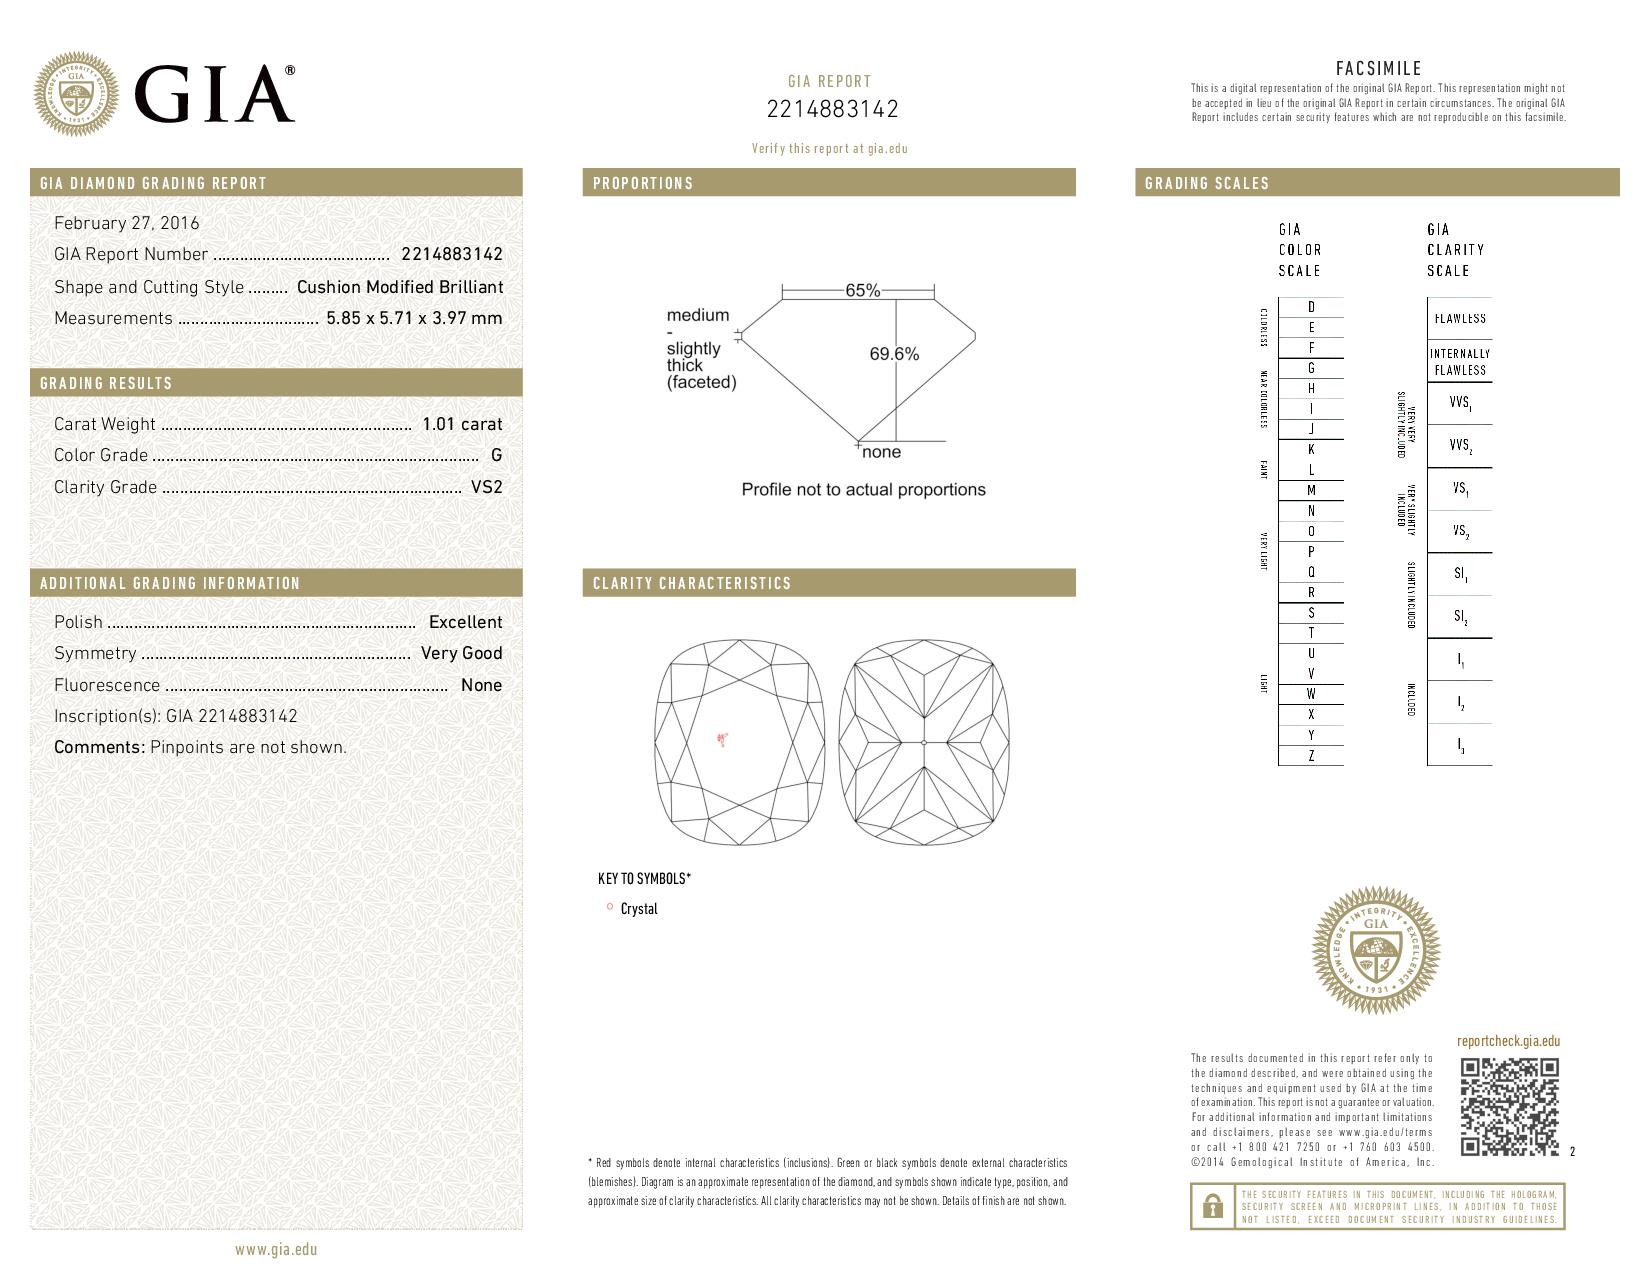 This is a 1.01 carat cushion shape, G color, VS2 clarity natural diamond accompanied by a GIA grading report.